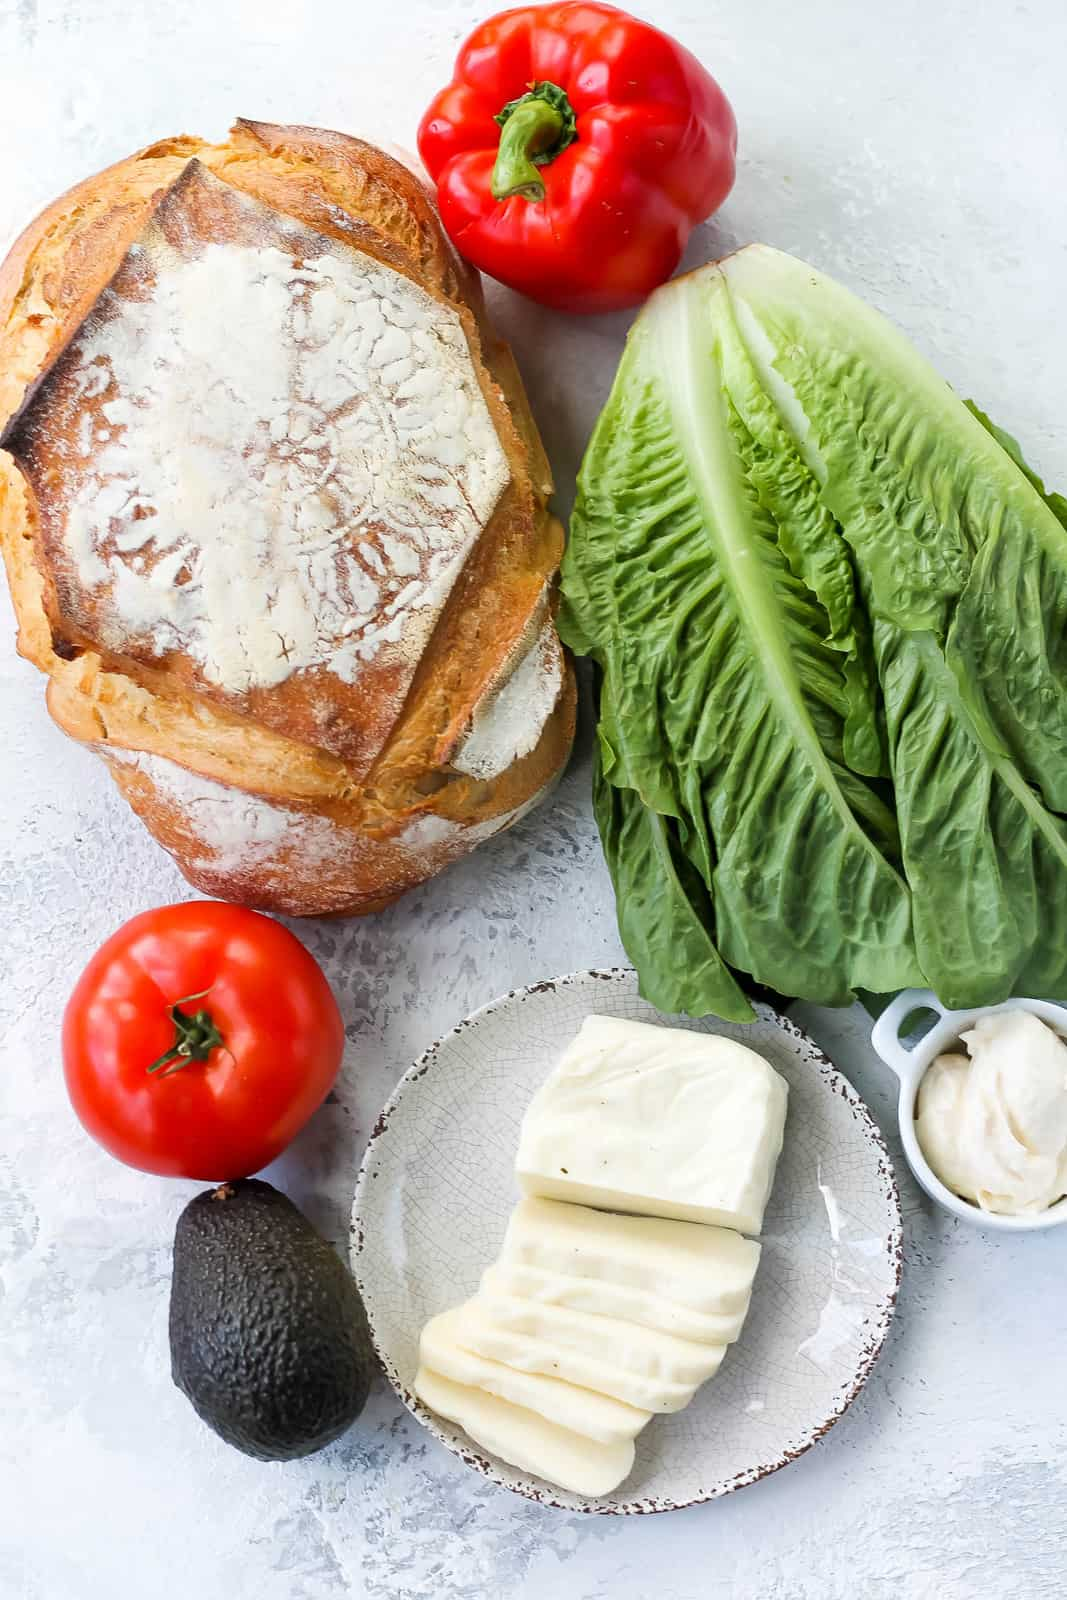 a loaf of bread, red pepper, lettuce, tomato, avocado, and halloumi cheese on a grey background